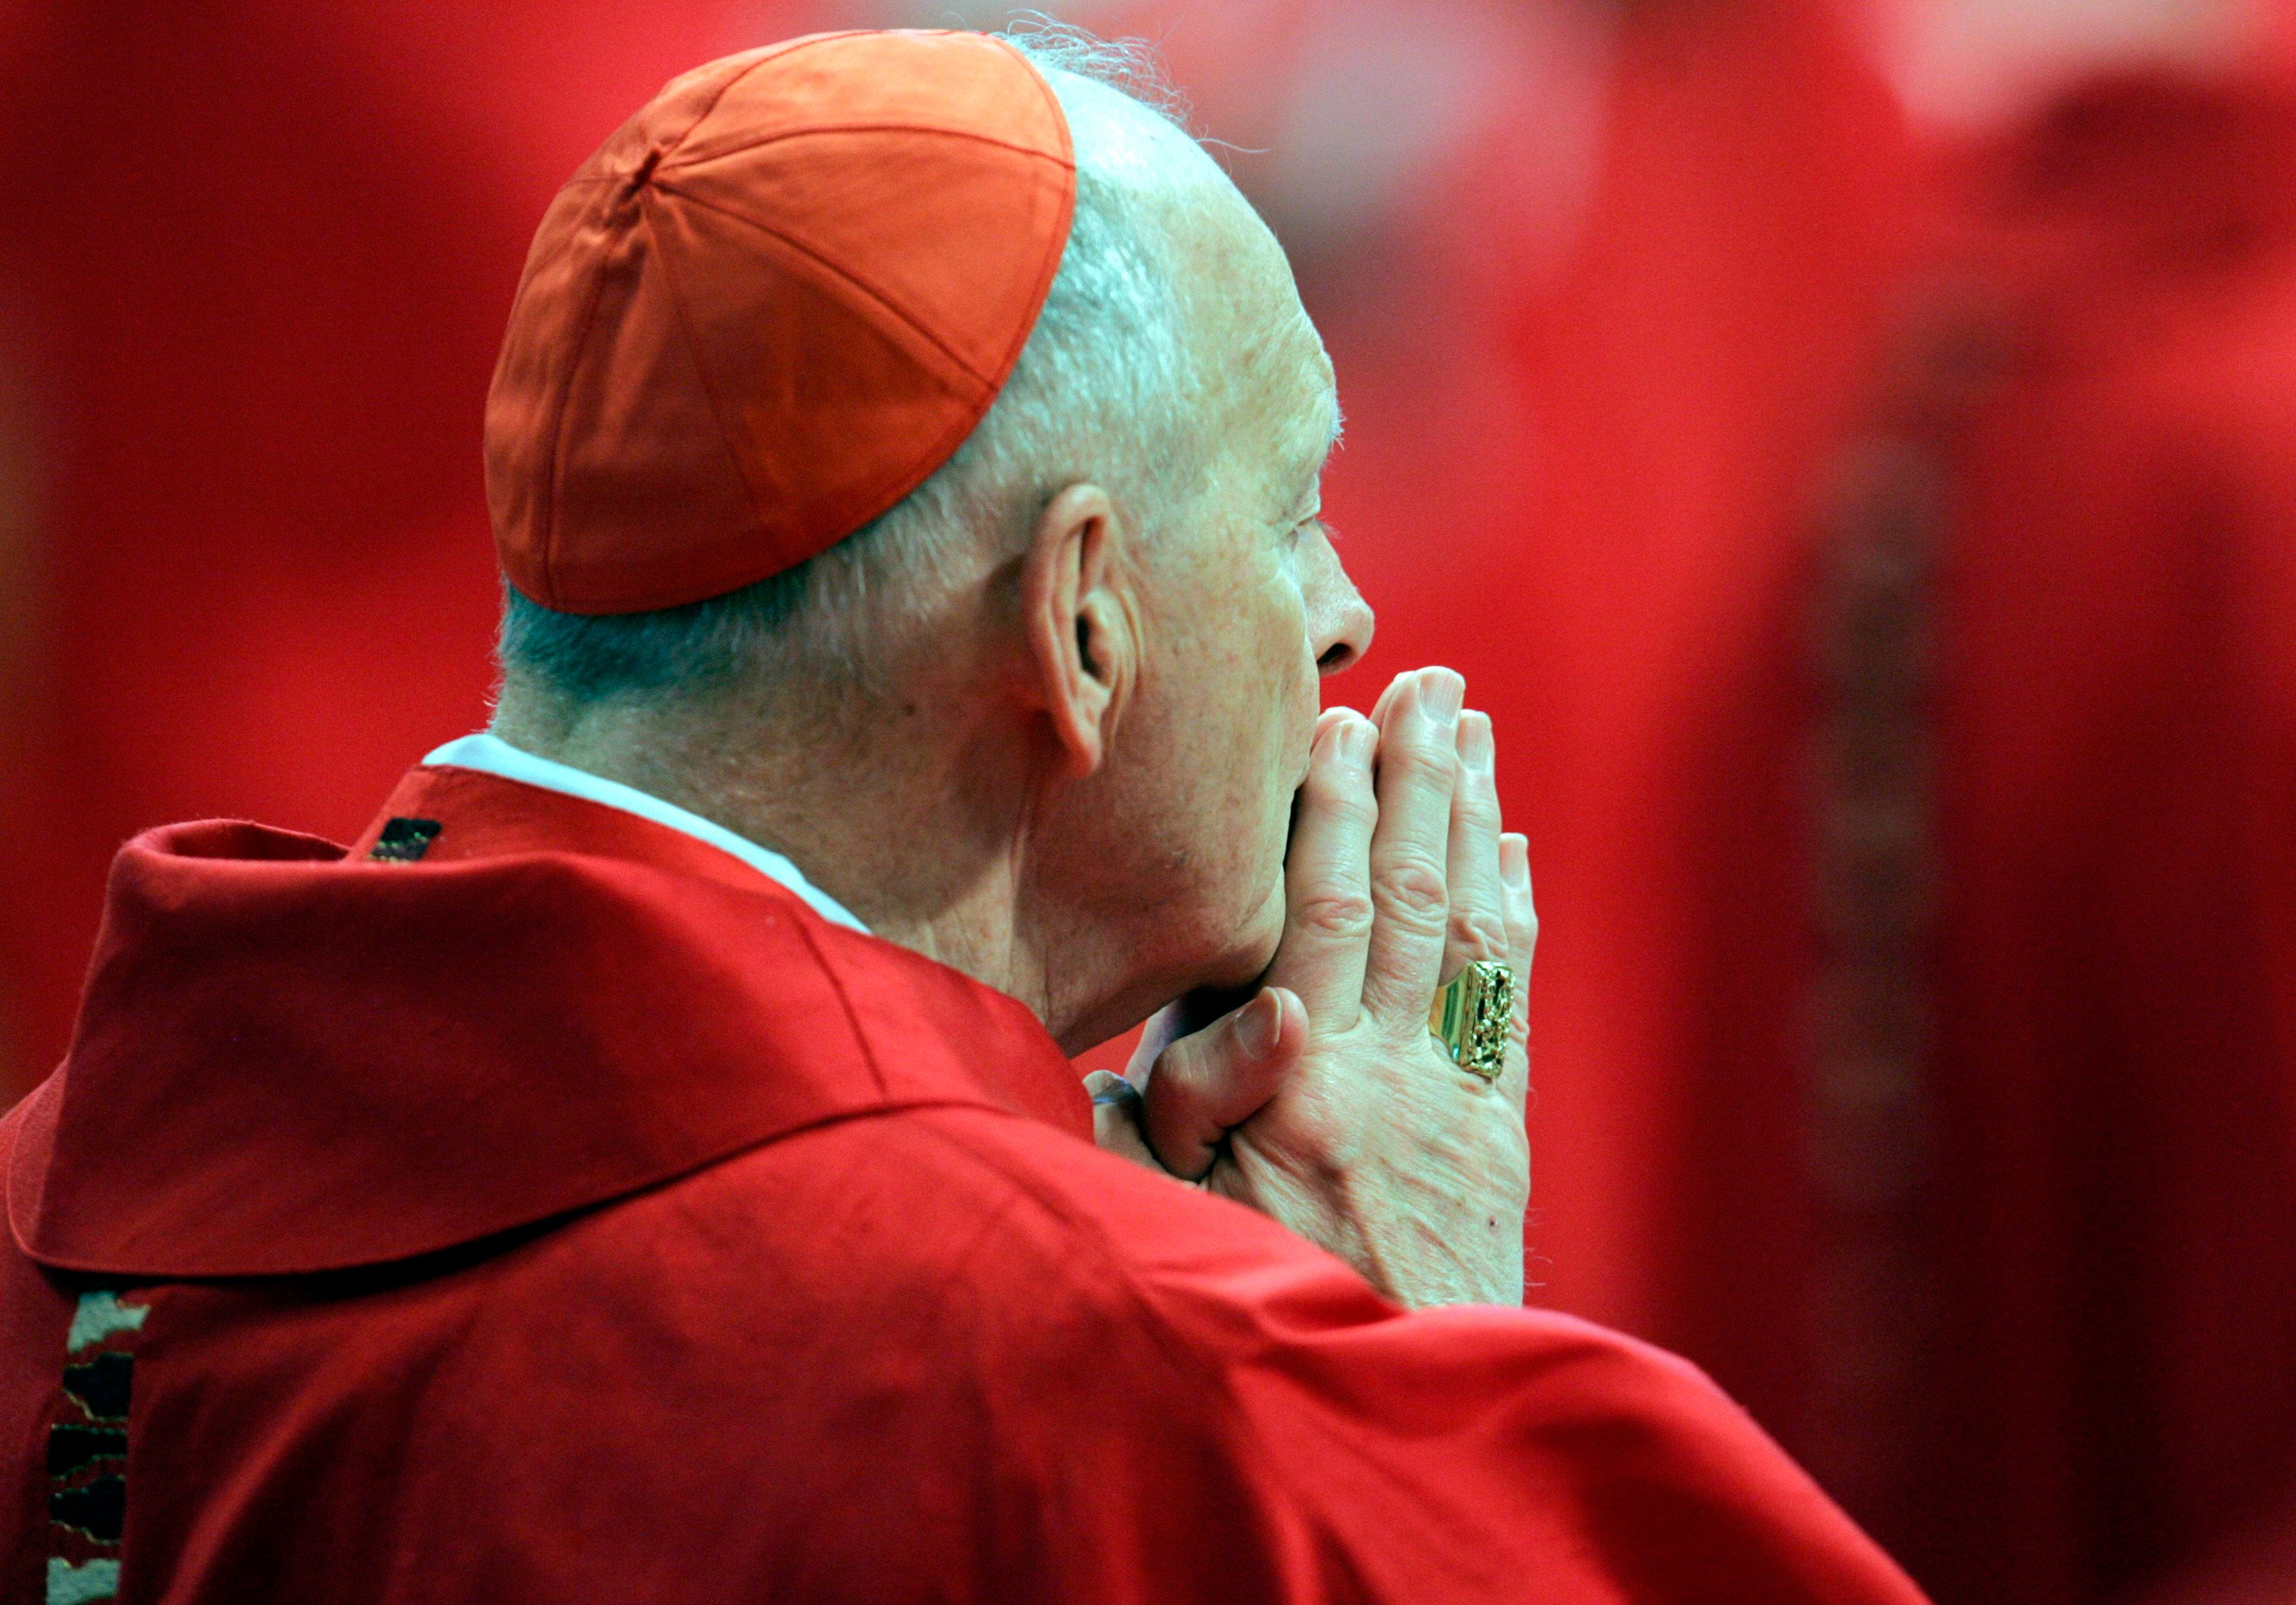 Vatican expels former US cardinal Theodore McCarrick over sex crimes